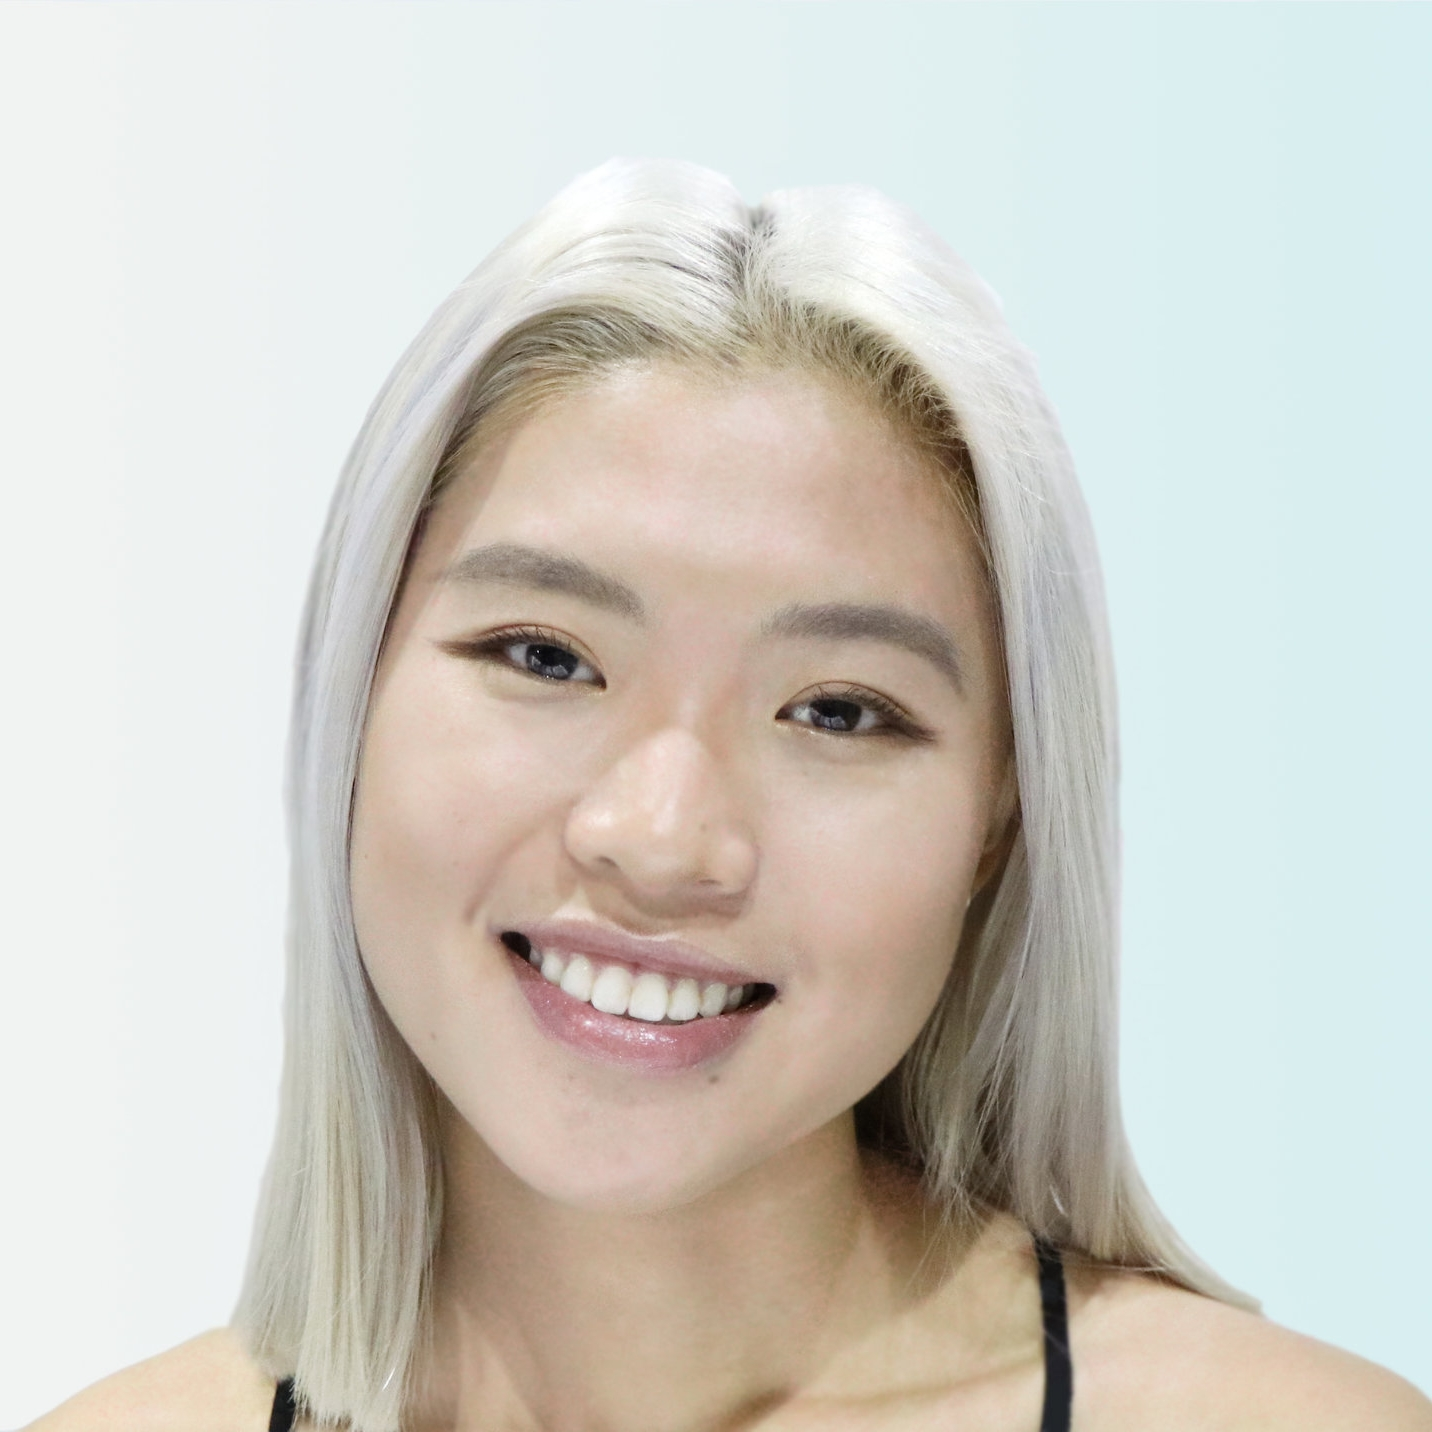 CONTESTANT #5  ISABELL LIU  Sponsored by  P. SMITH